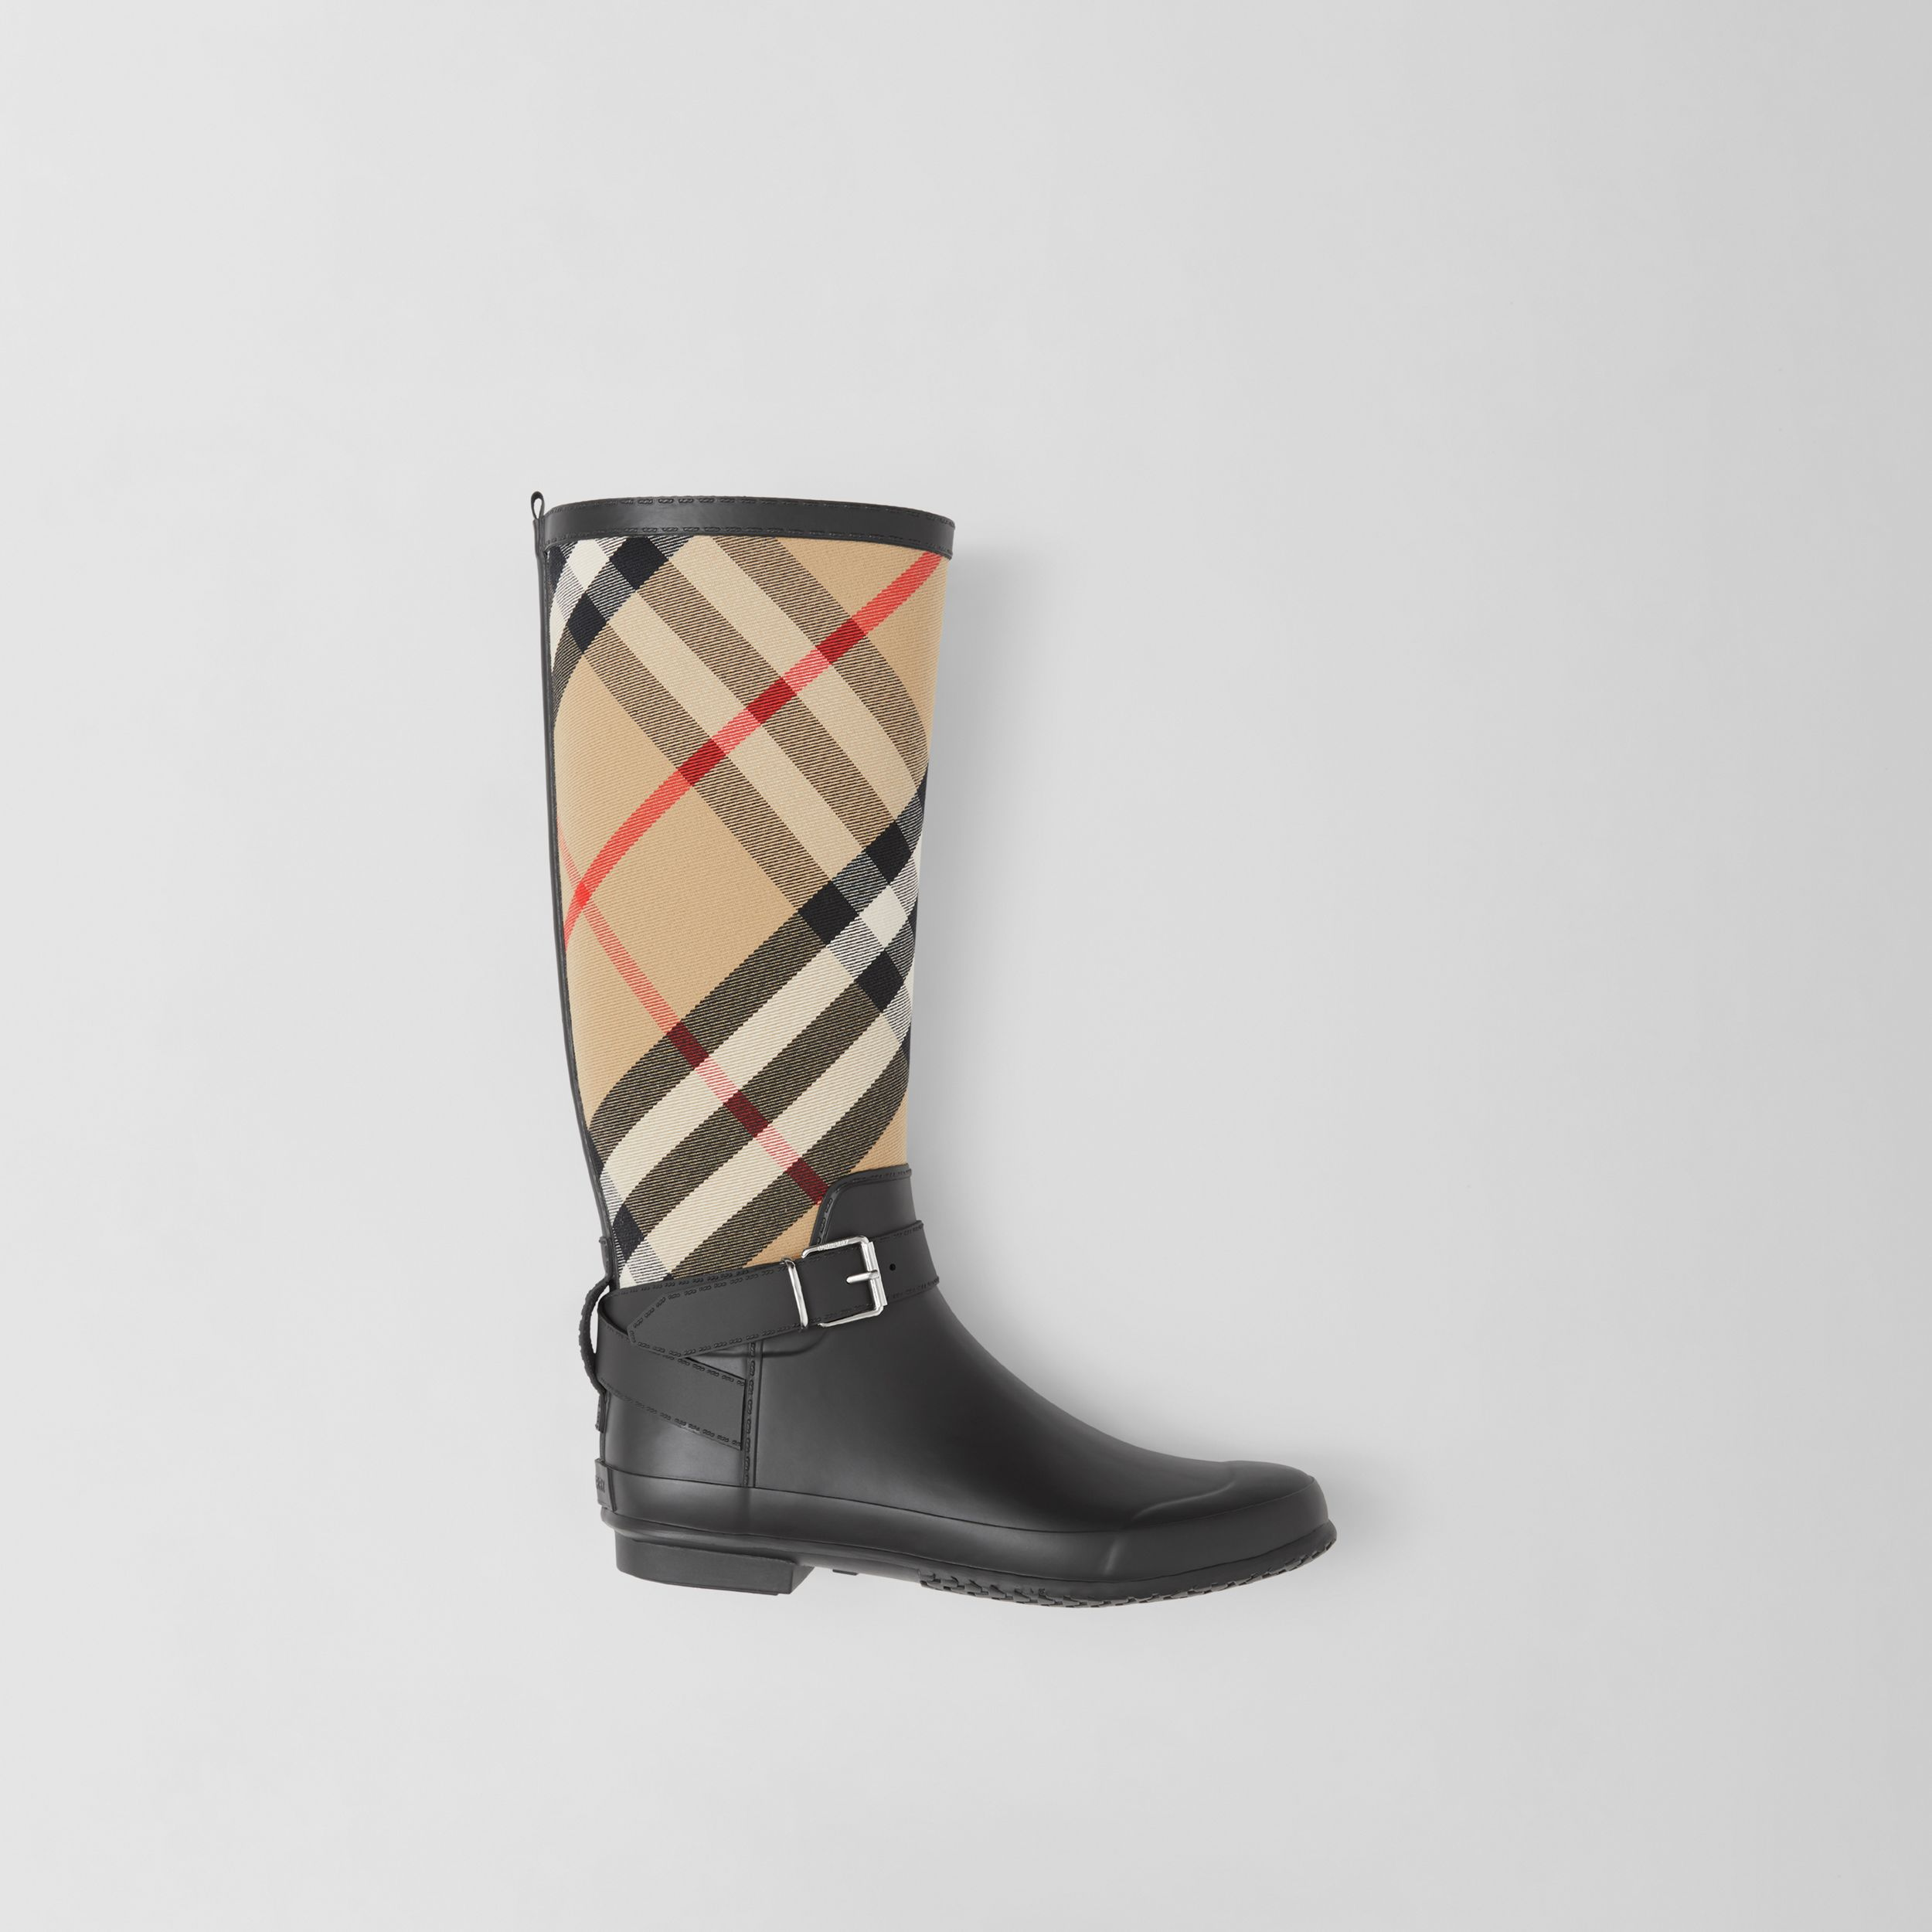 Strap Detail House Check and Rubber Rain Boots in Black/archive Beige - Women | Burberry Australia - 1